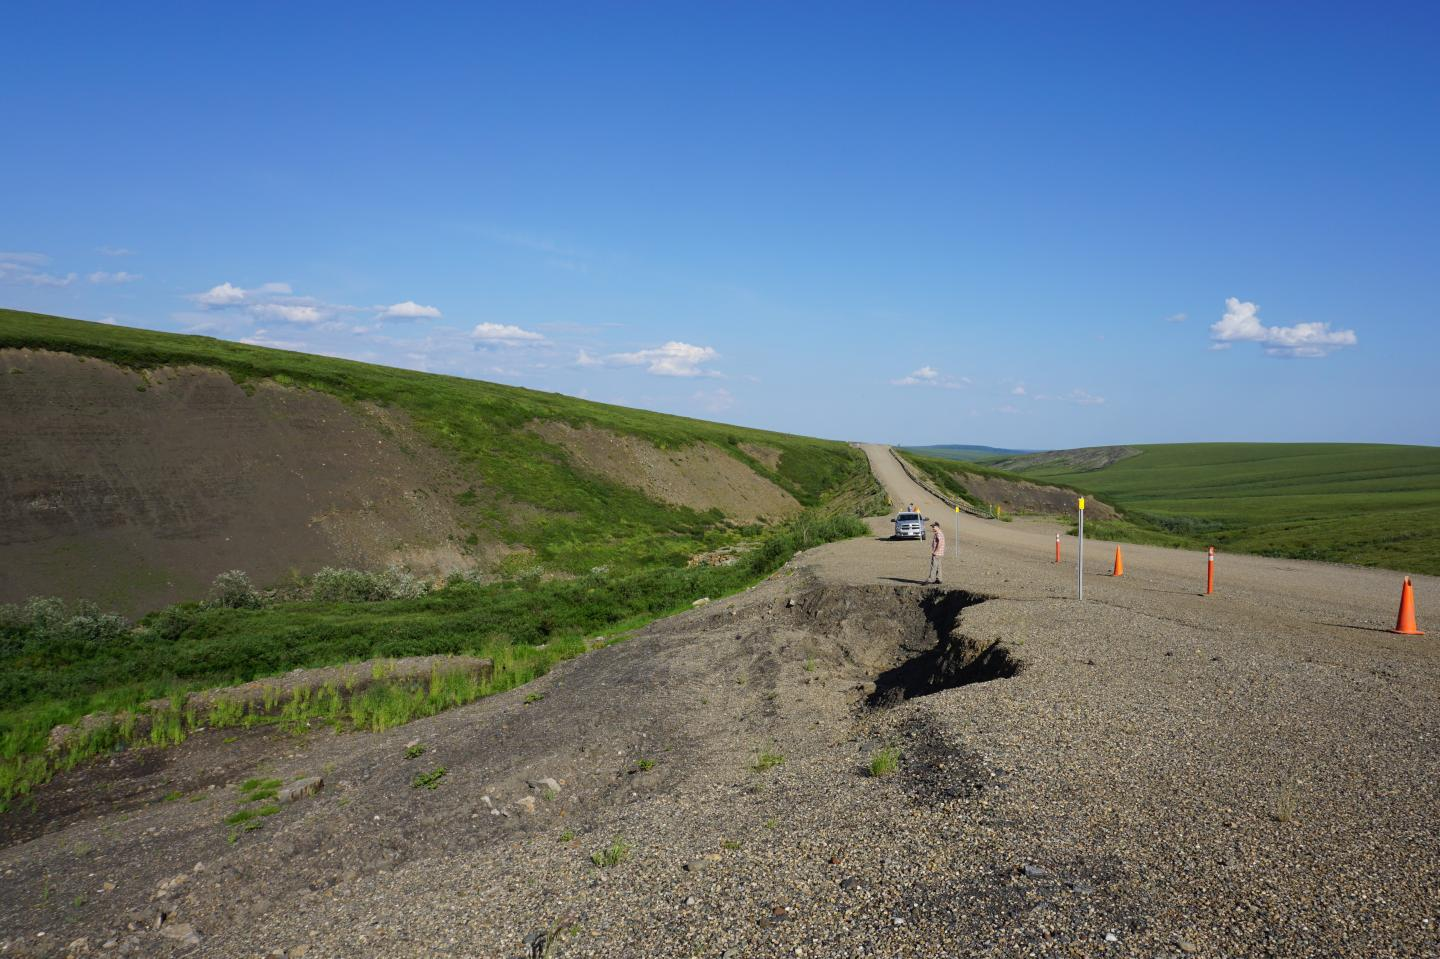 Road Subsidence Caused by Changes in Permafrost